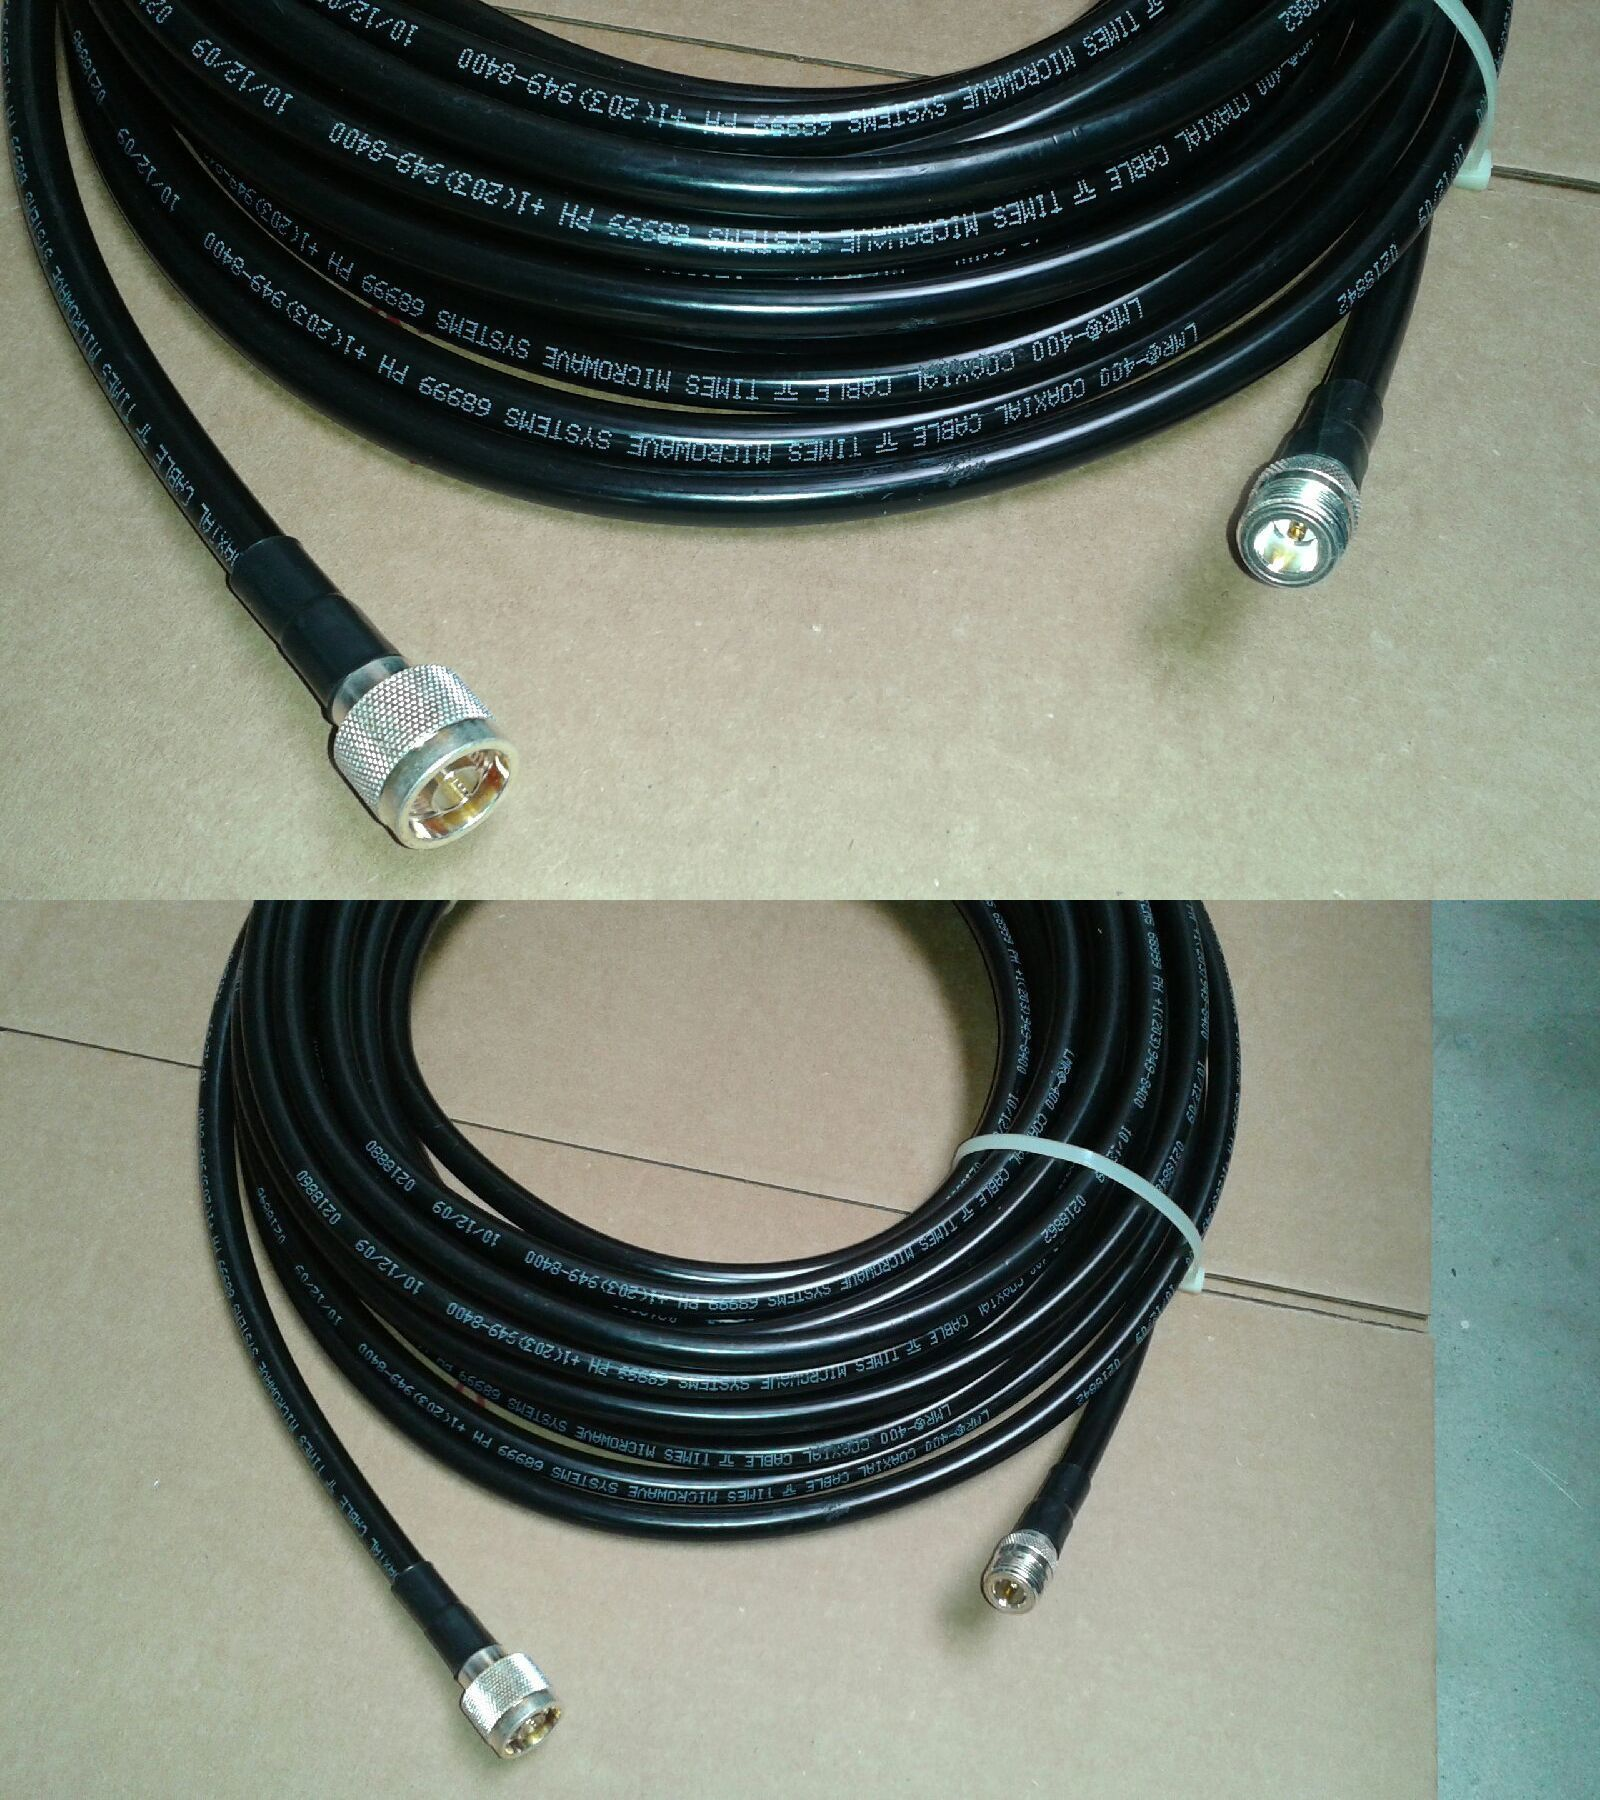 23 ft LMR400 Times Microwave 50 Ohm Antenna Coax Cable PL259 Male PL259 Male